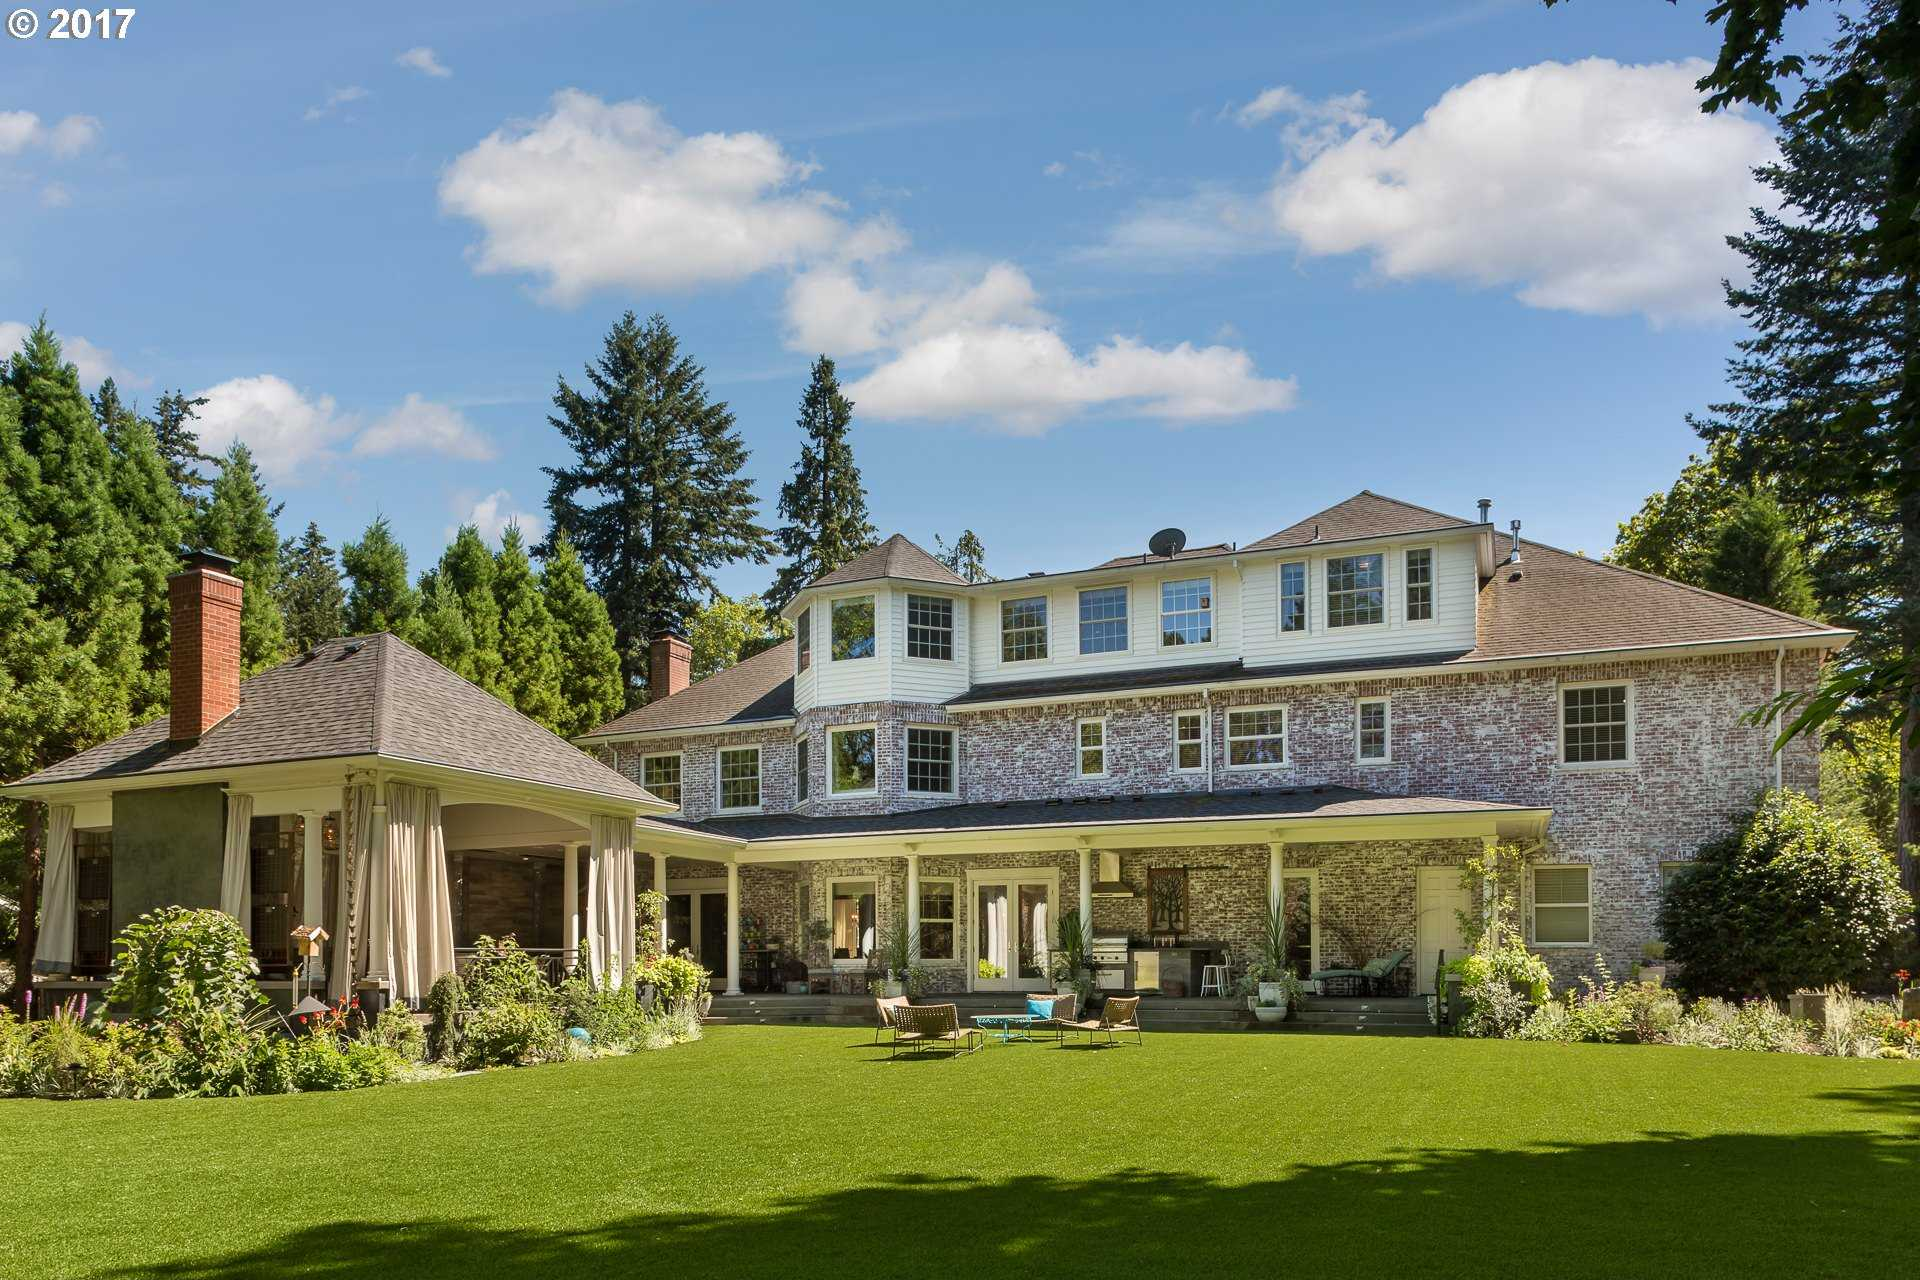 $2,995,000 - 5Br/6Ba -  for Sale in Dunthorpe Riverdale, Portland